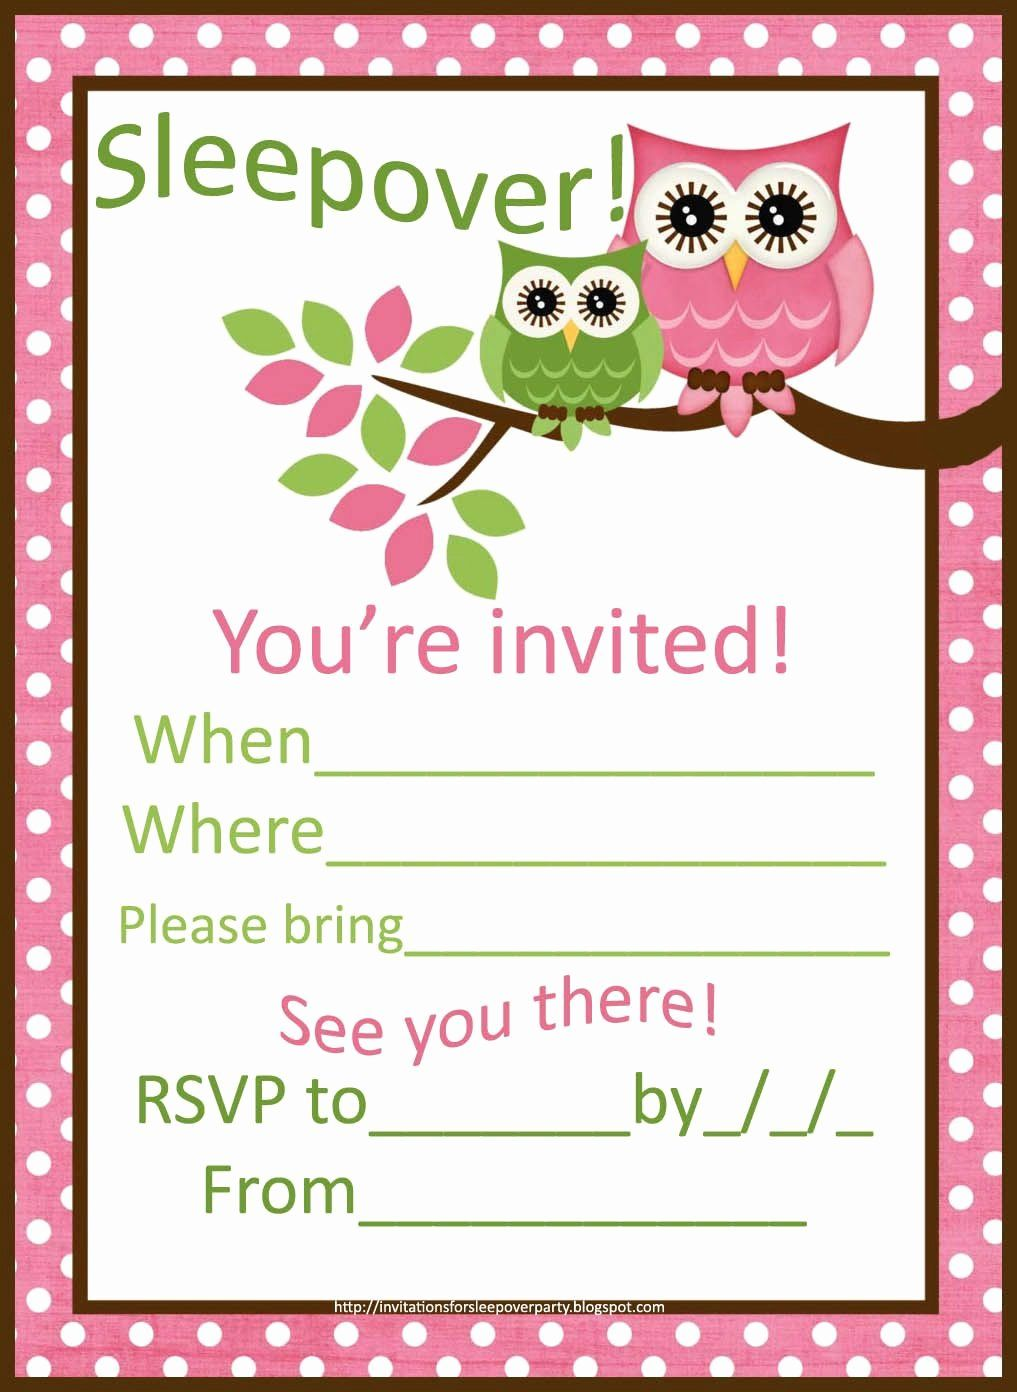 √ 30 Free Girl Birthday Invitation in 2020 (With images) | Slumber party  invitations, Sleepover invitations, Sleepover party